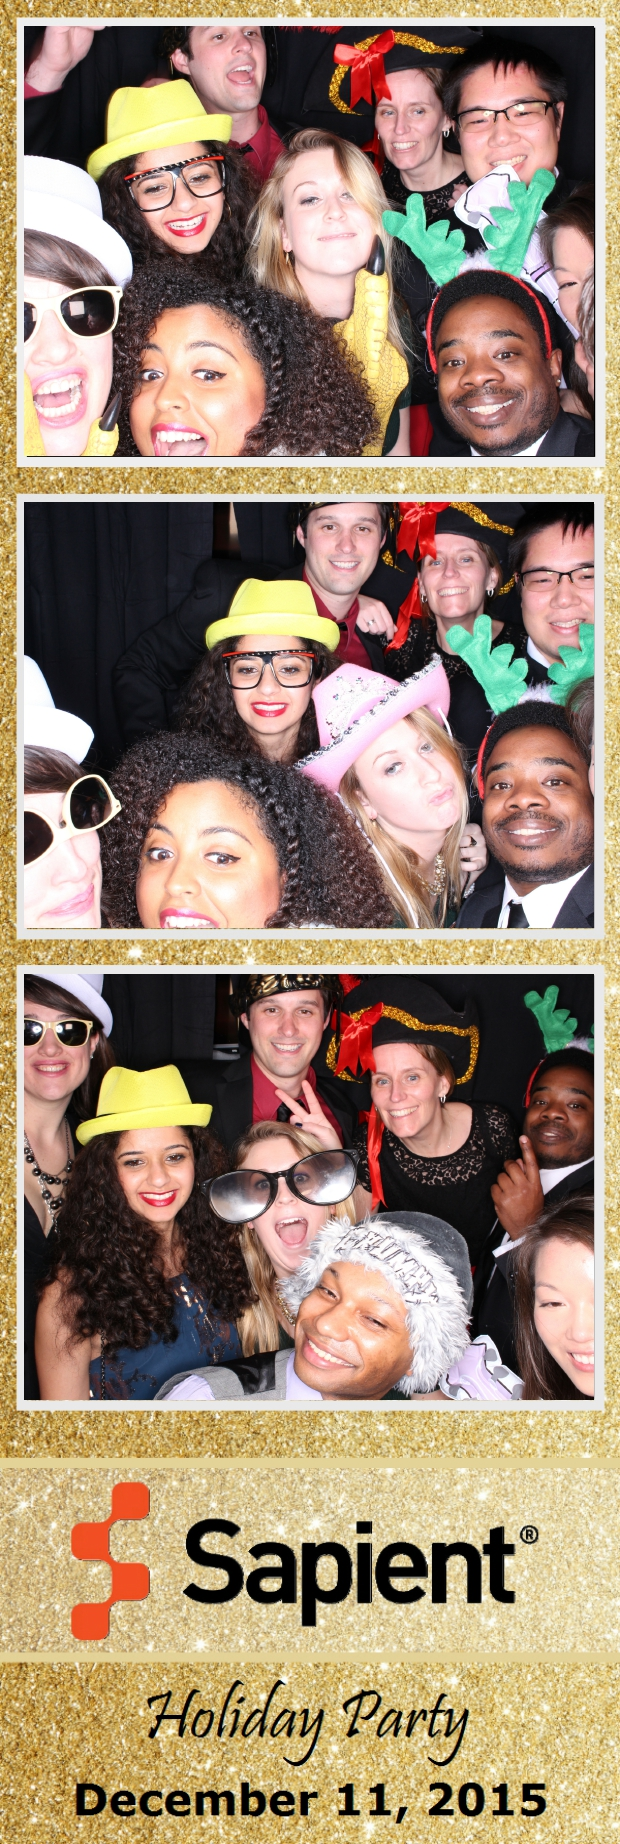 Guest House Events Photo Booth Sapient Holiday Party (54).jpg